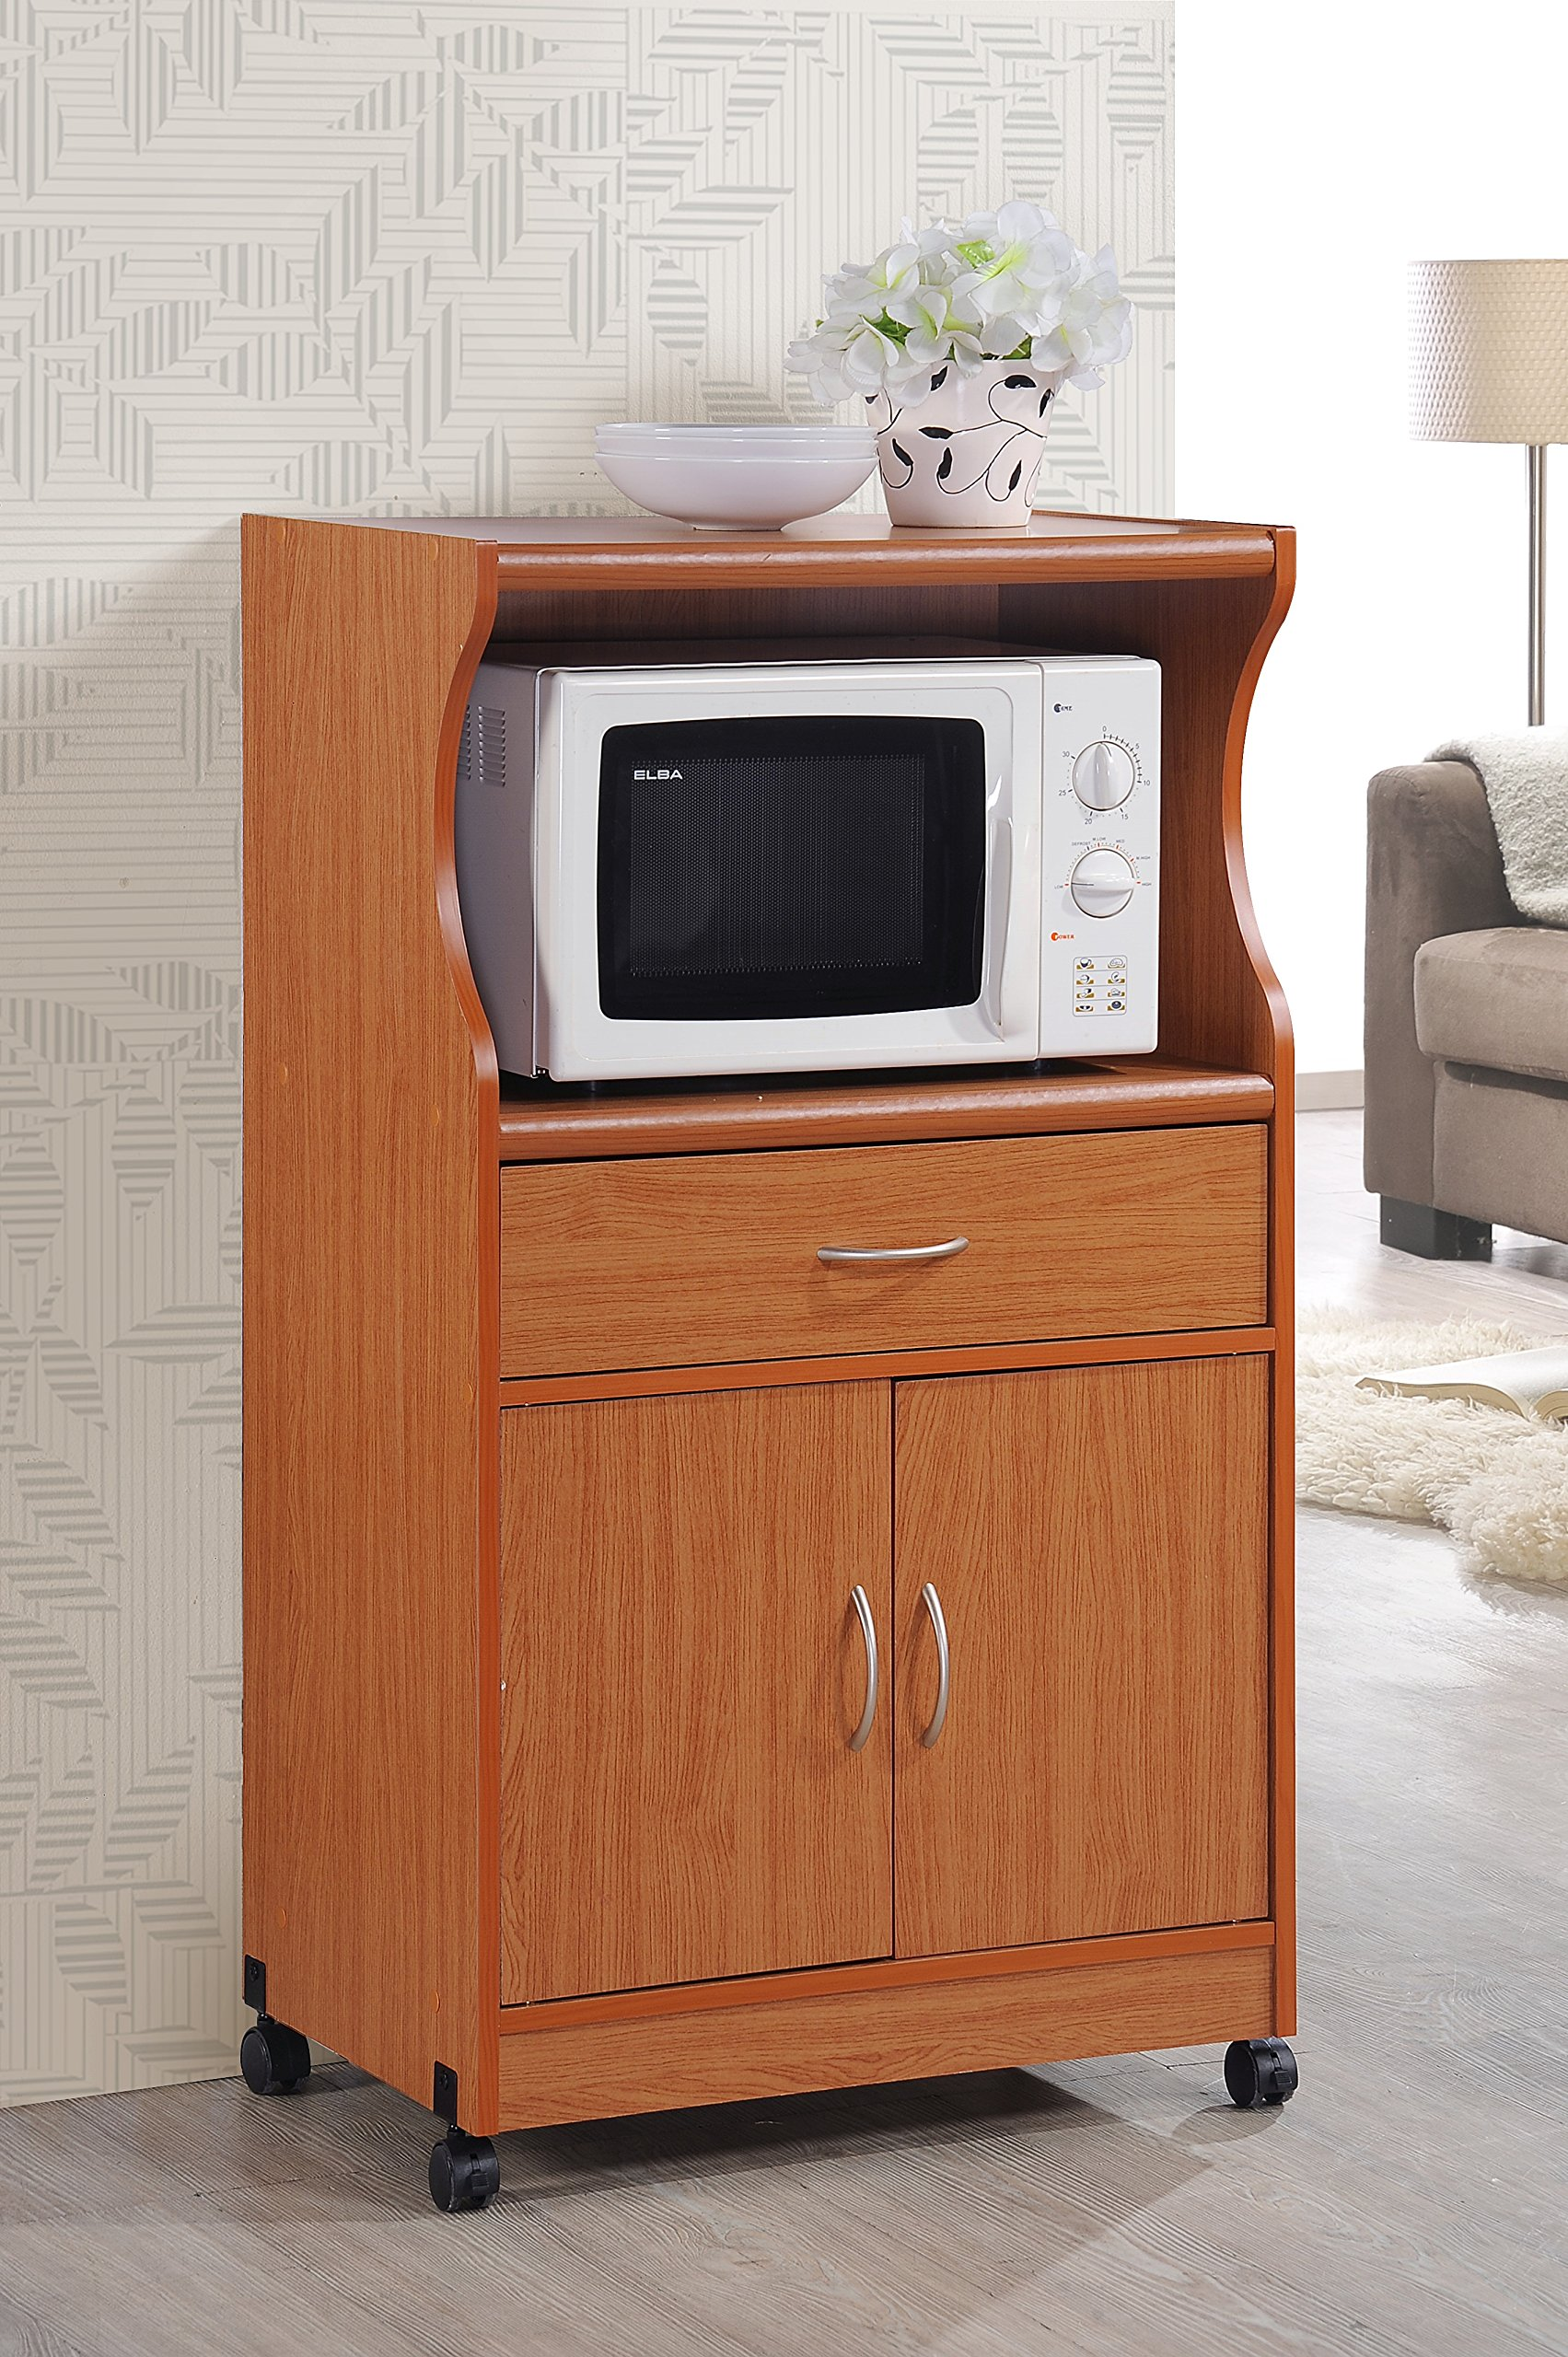 Hodedah Microwave Cart with One Drawer, Two Doors, and Shelf for Storage, Cherry by HODEDAH IMPORT (Image #2)